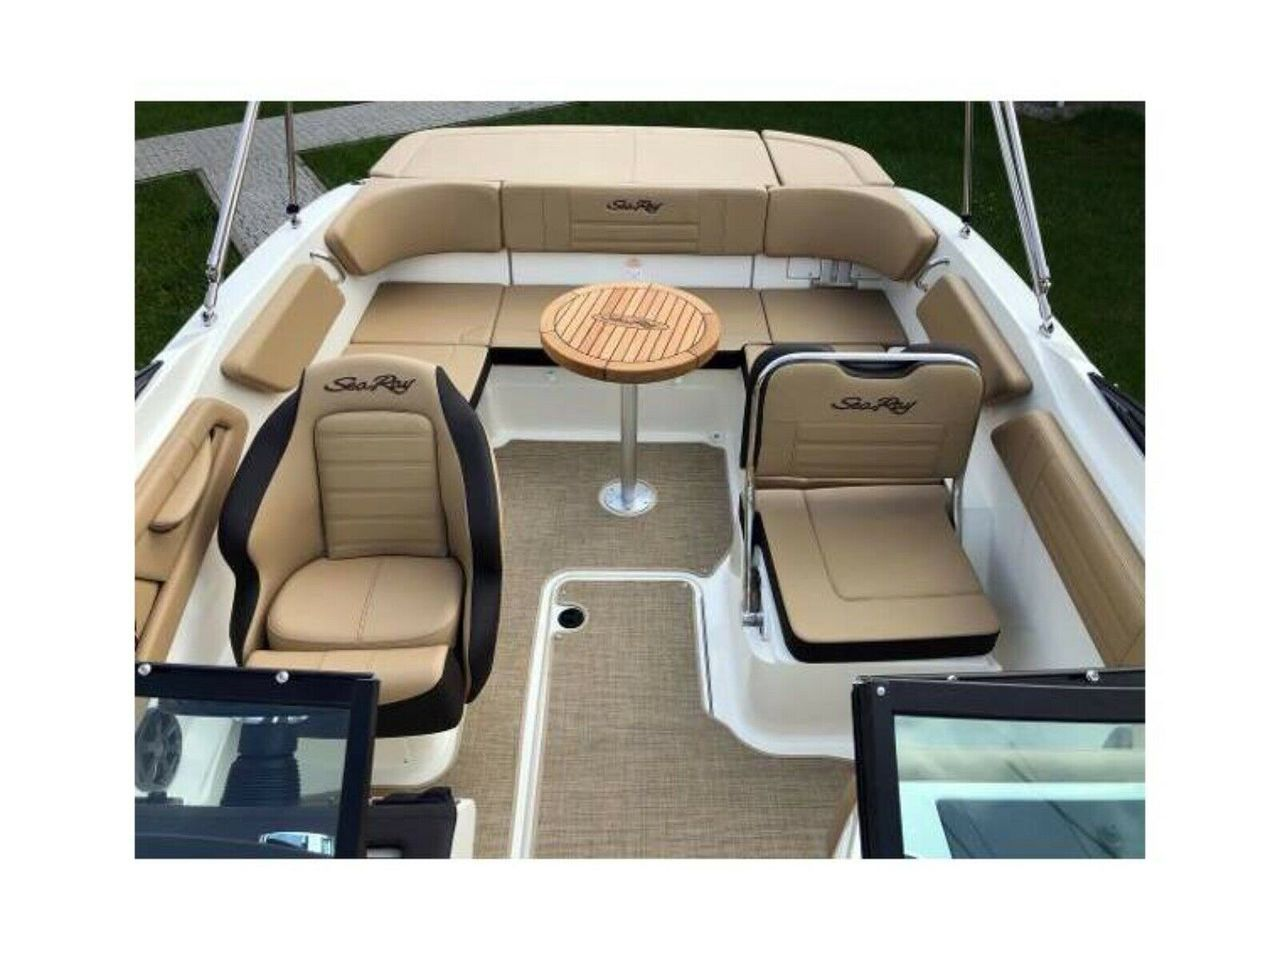 Sea Ray 210 SPXE - Bild 3